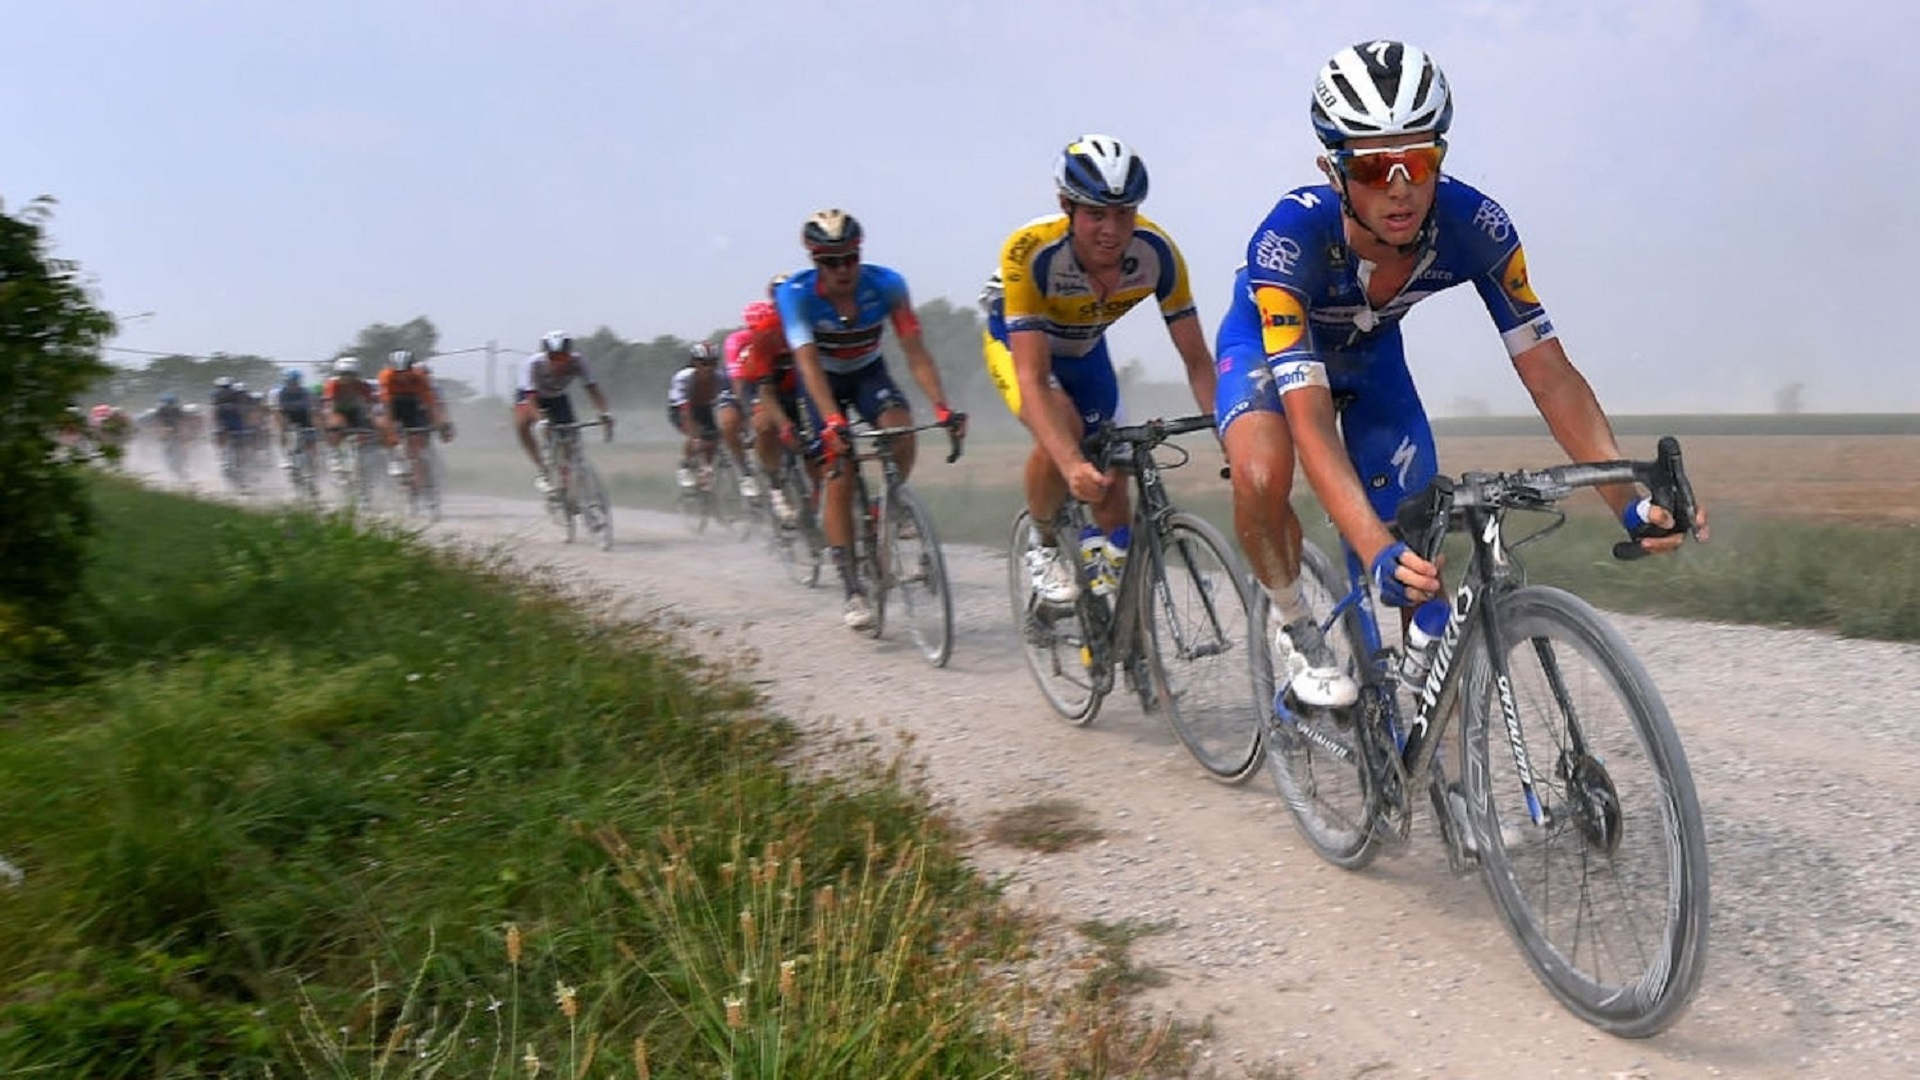 cycling_sports race_athlete